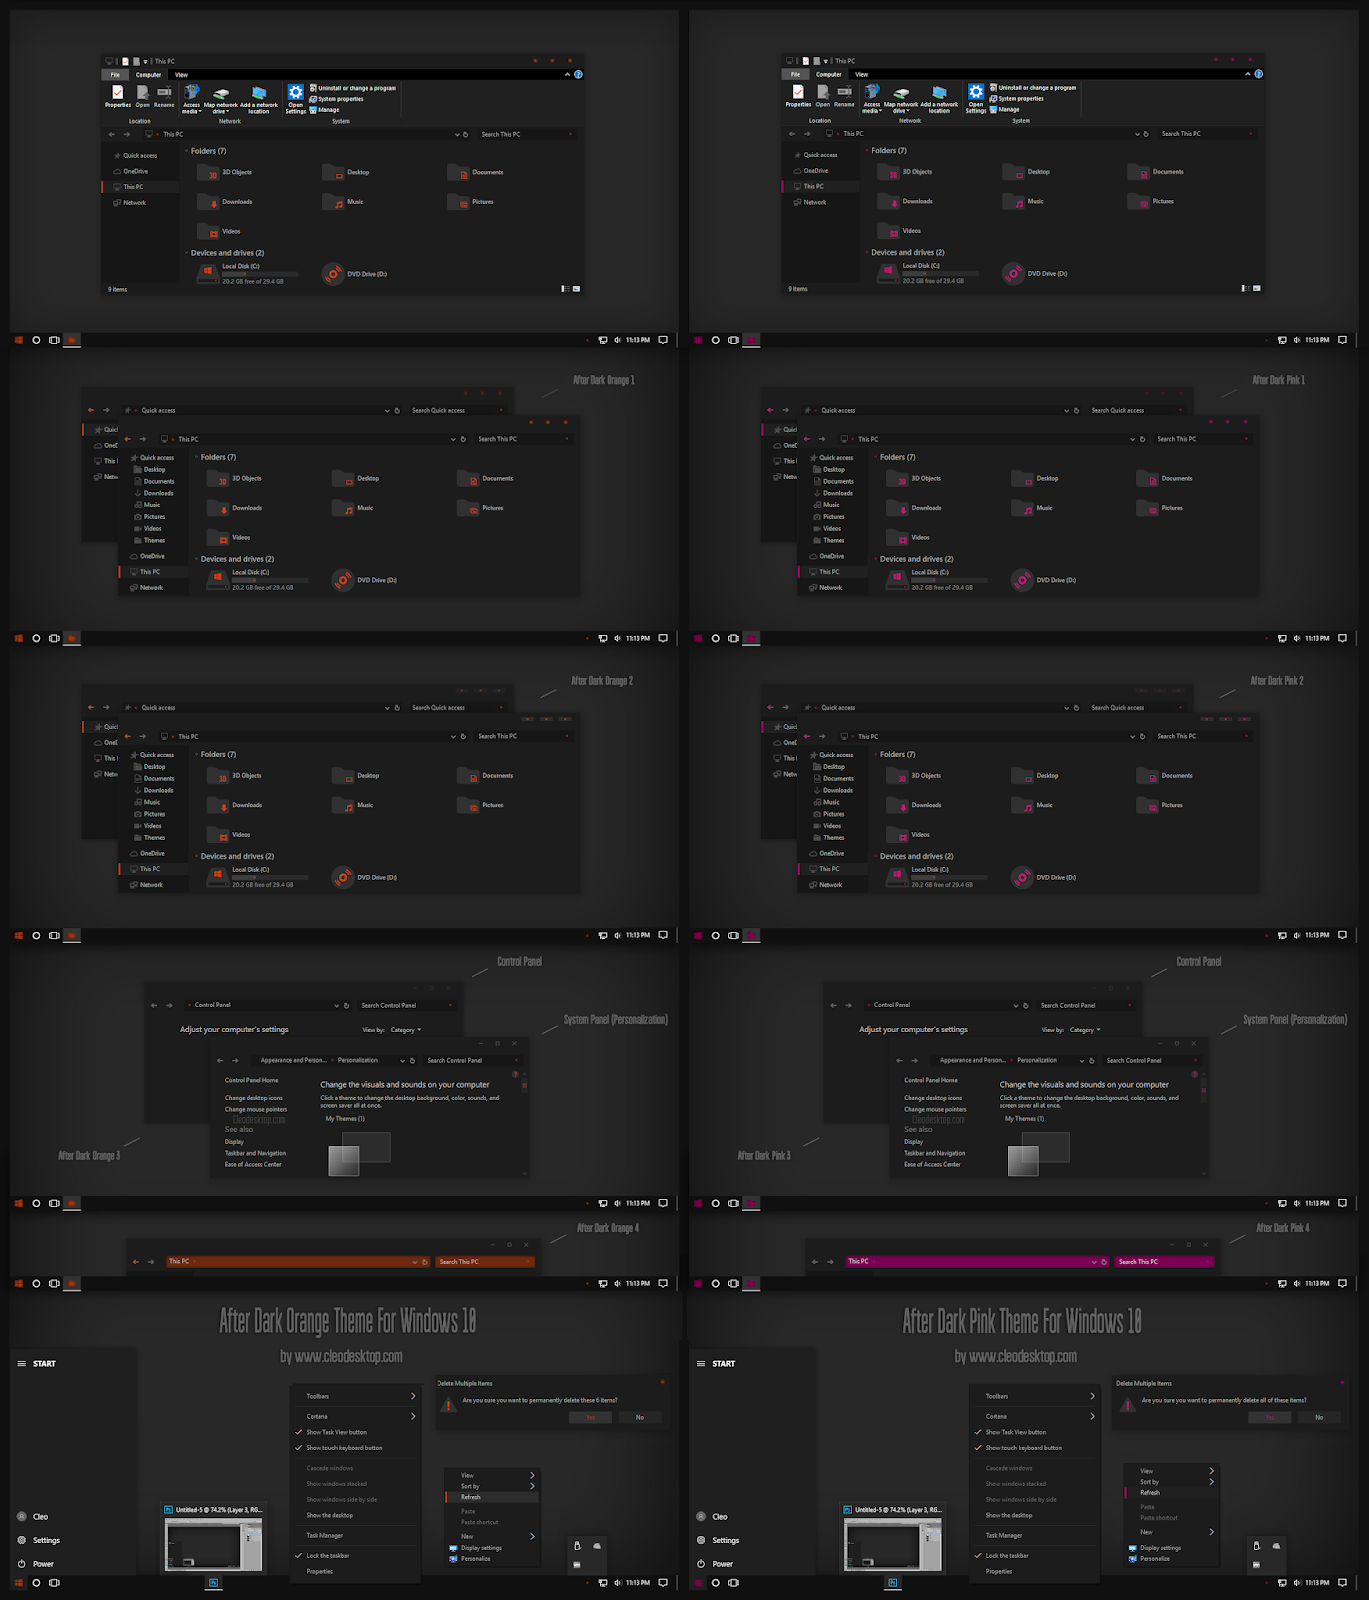 After Dark Orange And Pink Theme For Windows10 2004